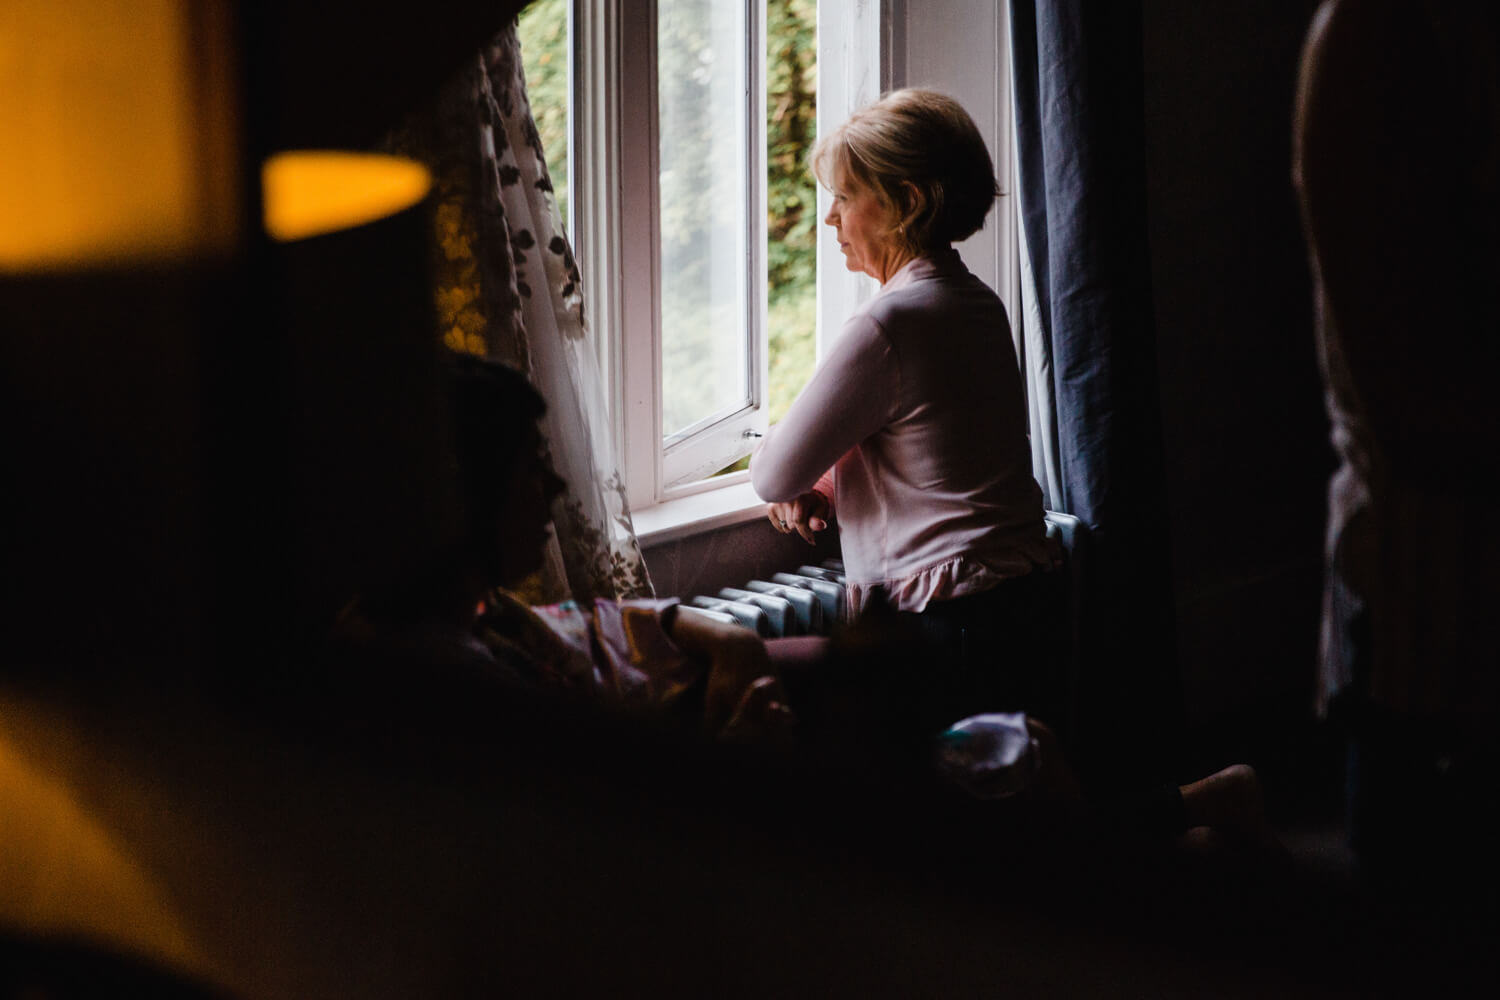 low light exposure photograph of mother looking out window